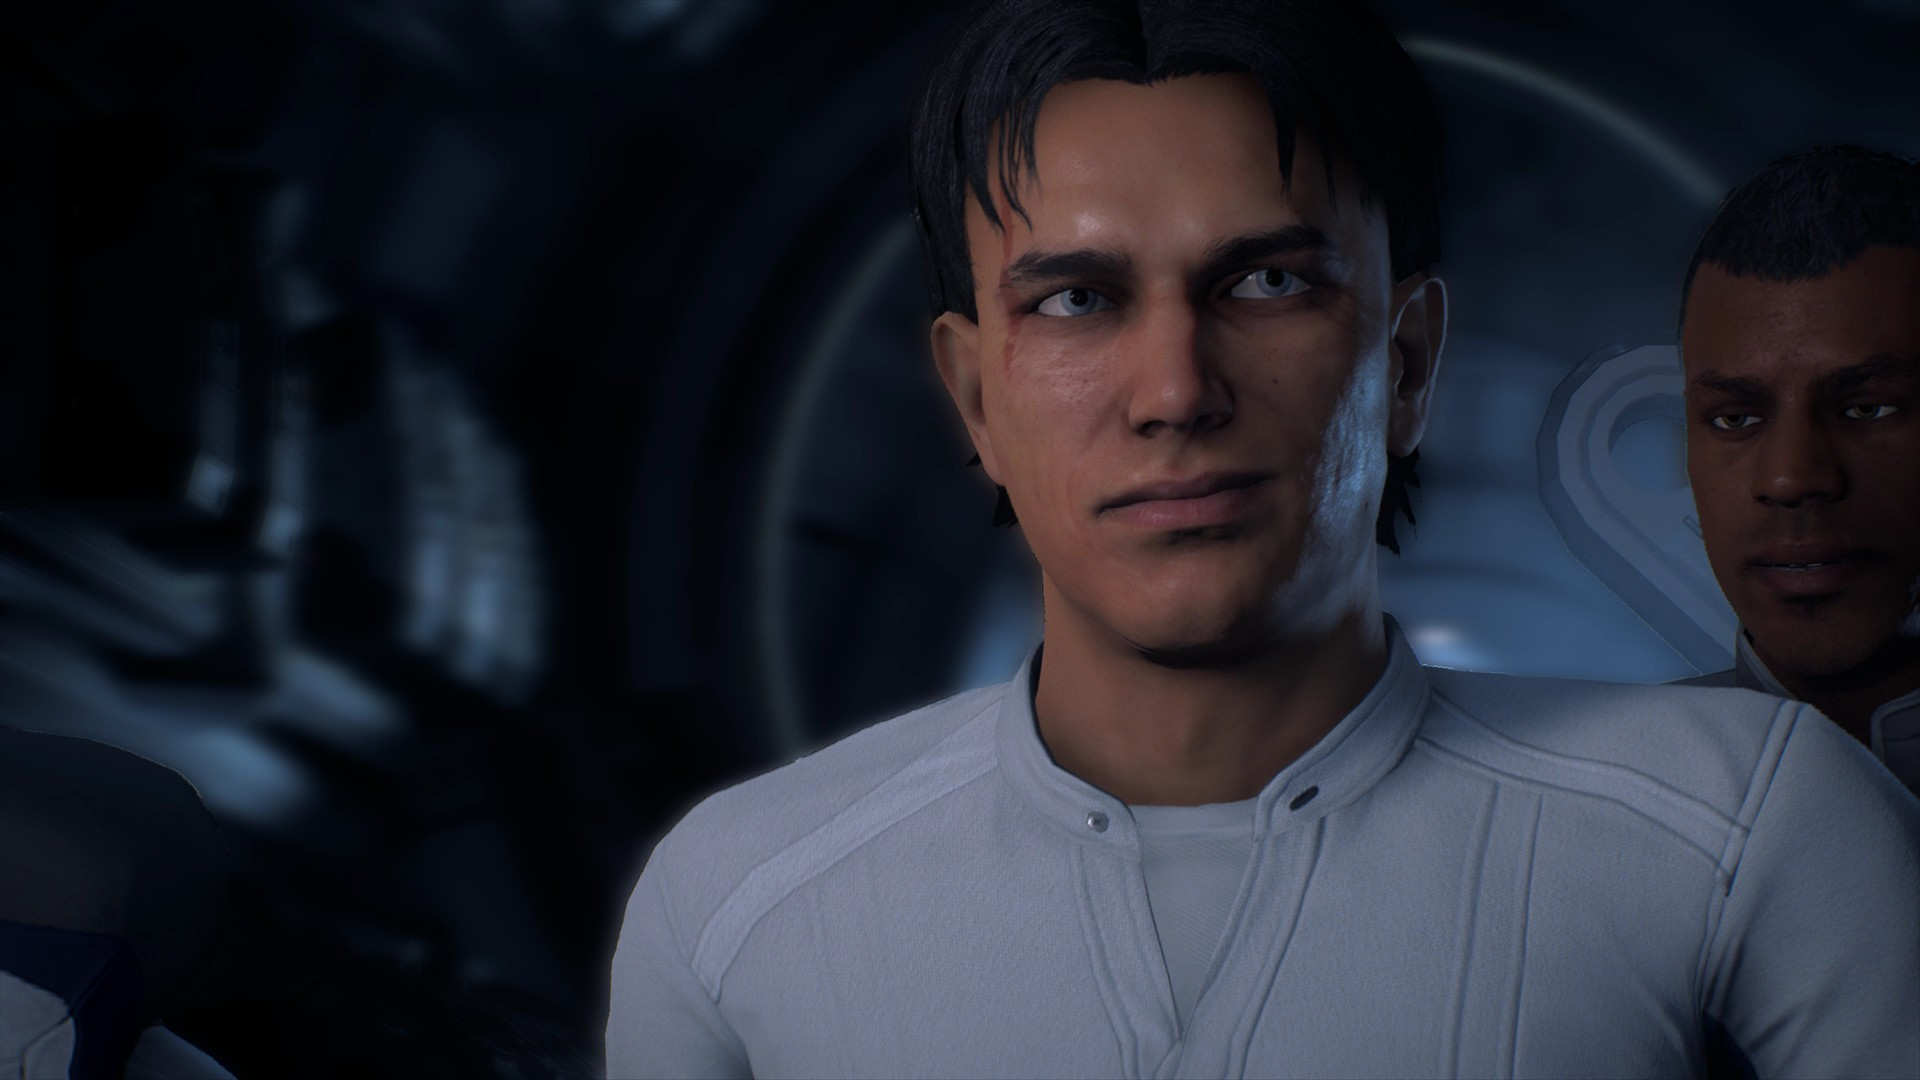 mass-effect-andromeda-personagem-criacao (1)